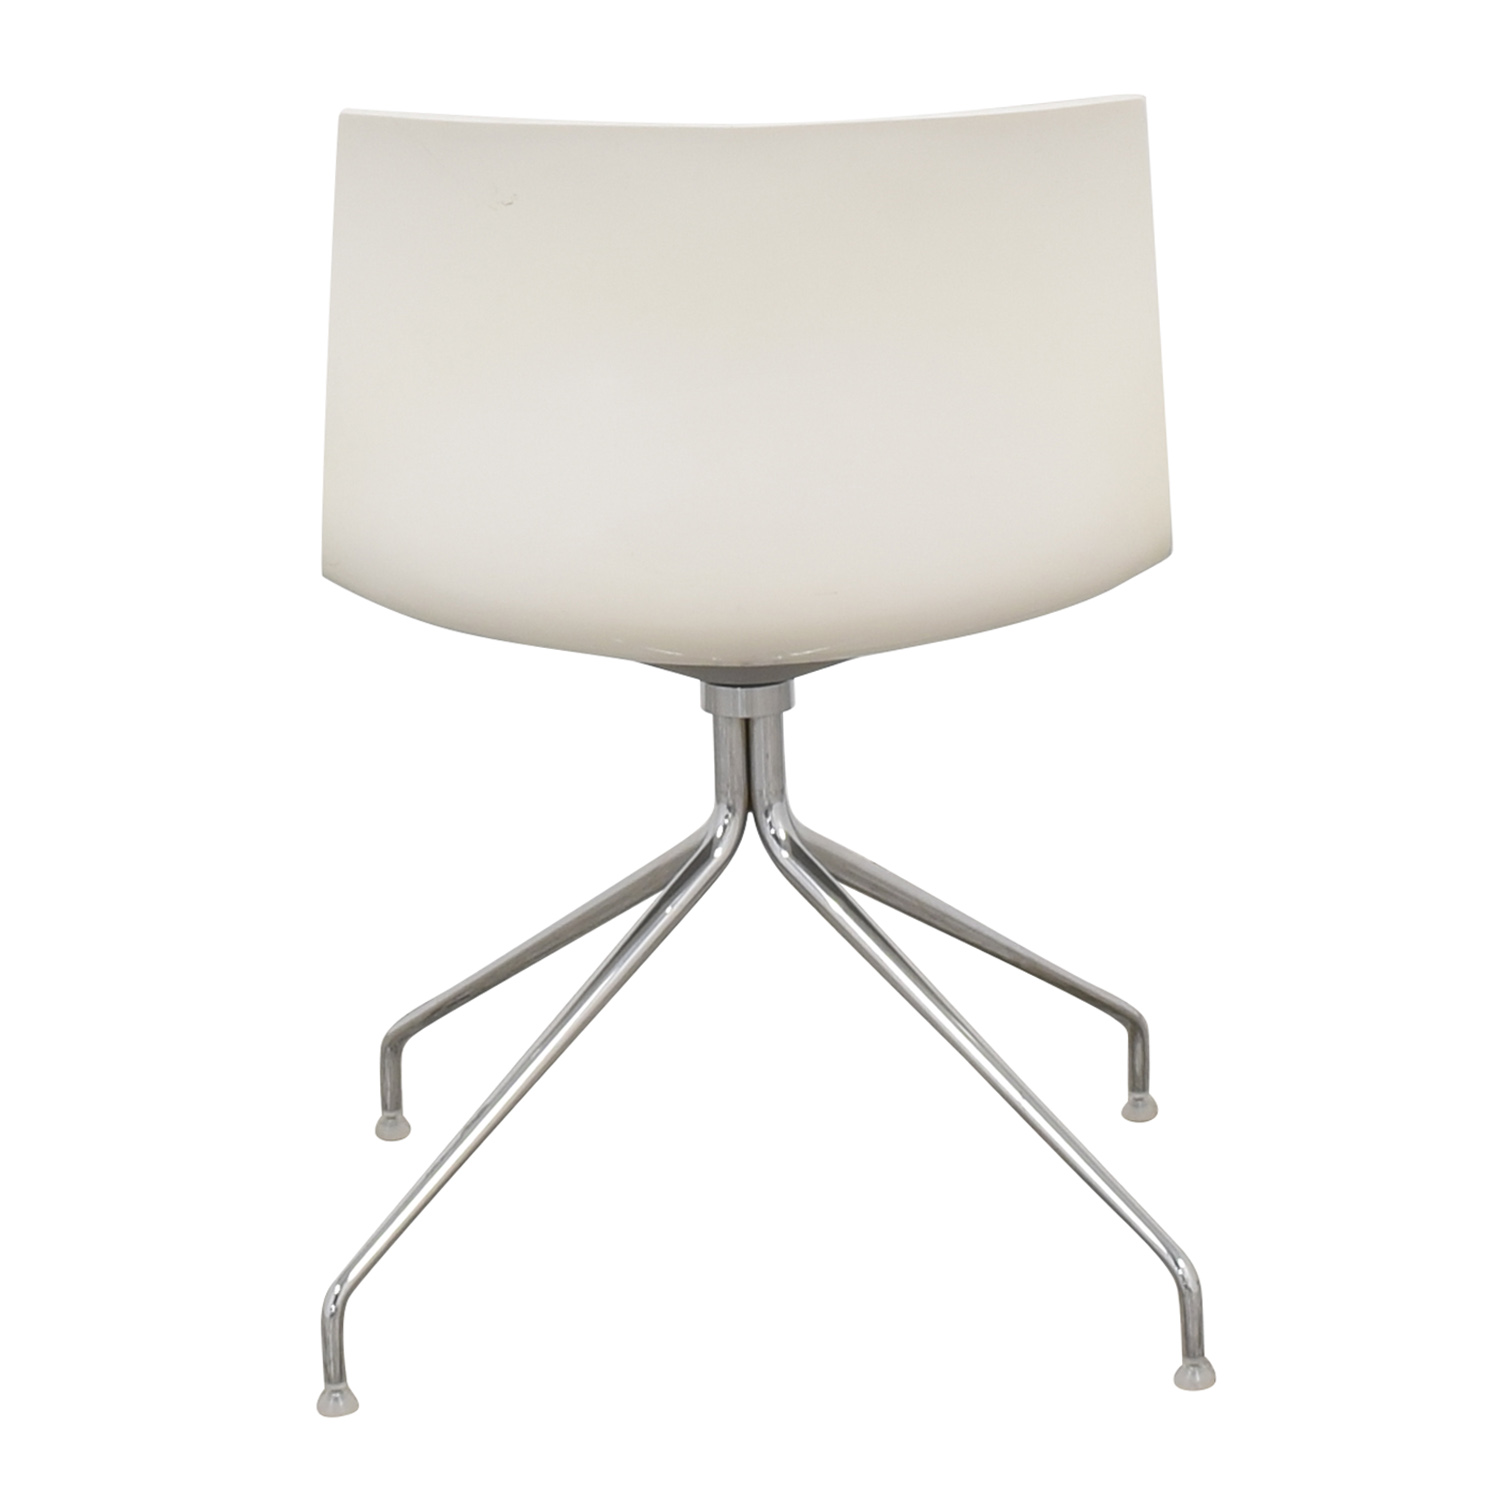 Arper Arper Catifa 46 Trestle Swivel Chair ct